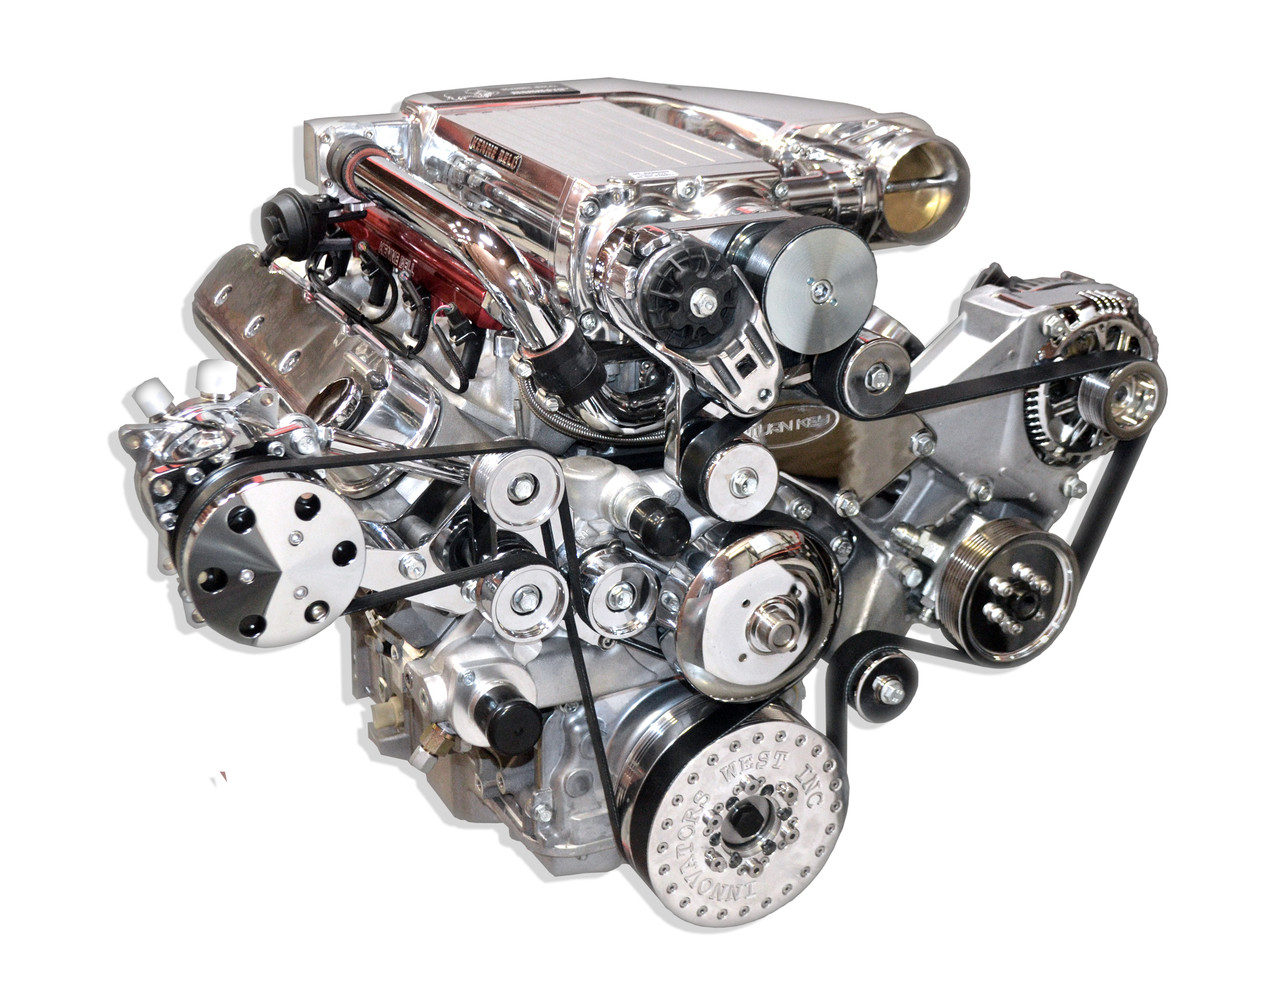 LS3 6 2L 710 HP Supercharged Turn Key Engine Assembly - Street